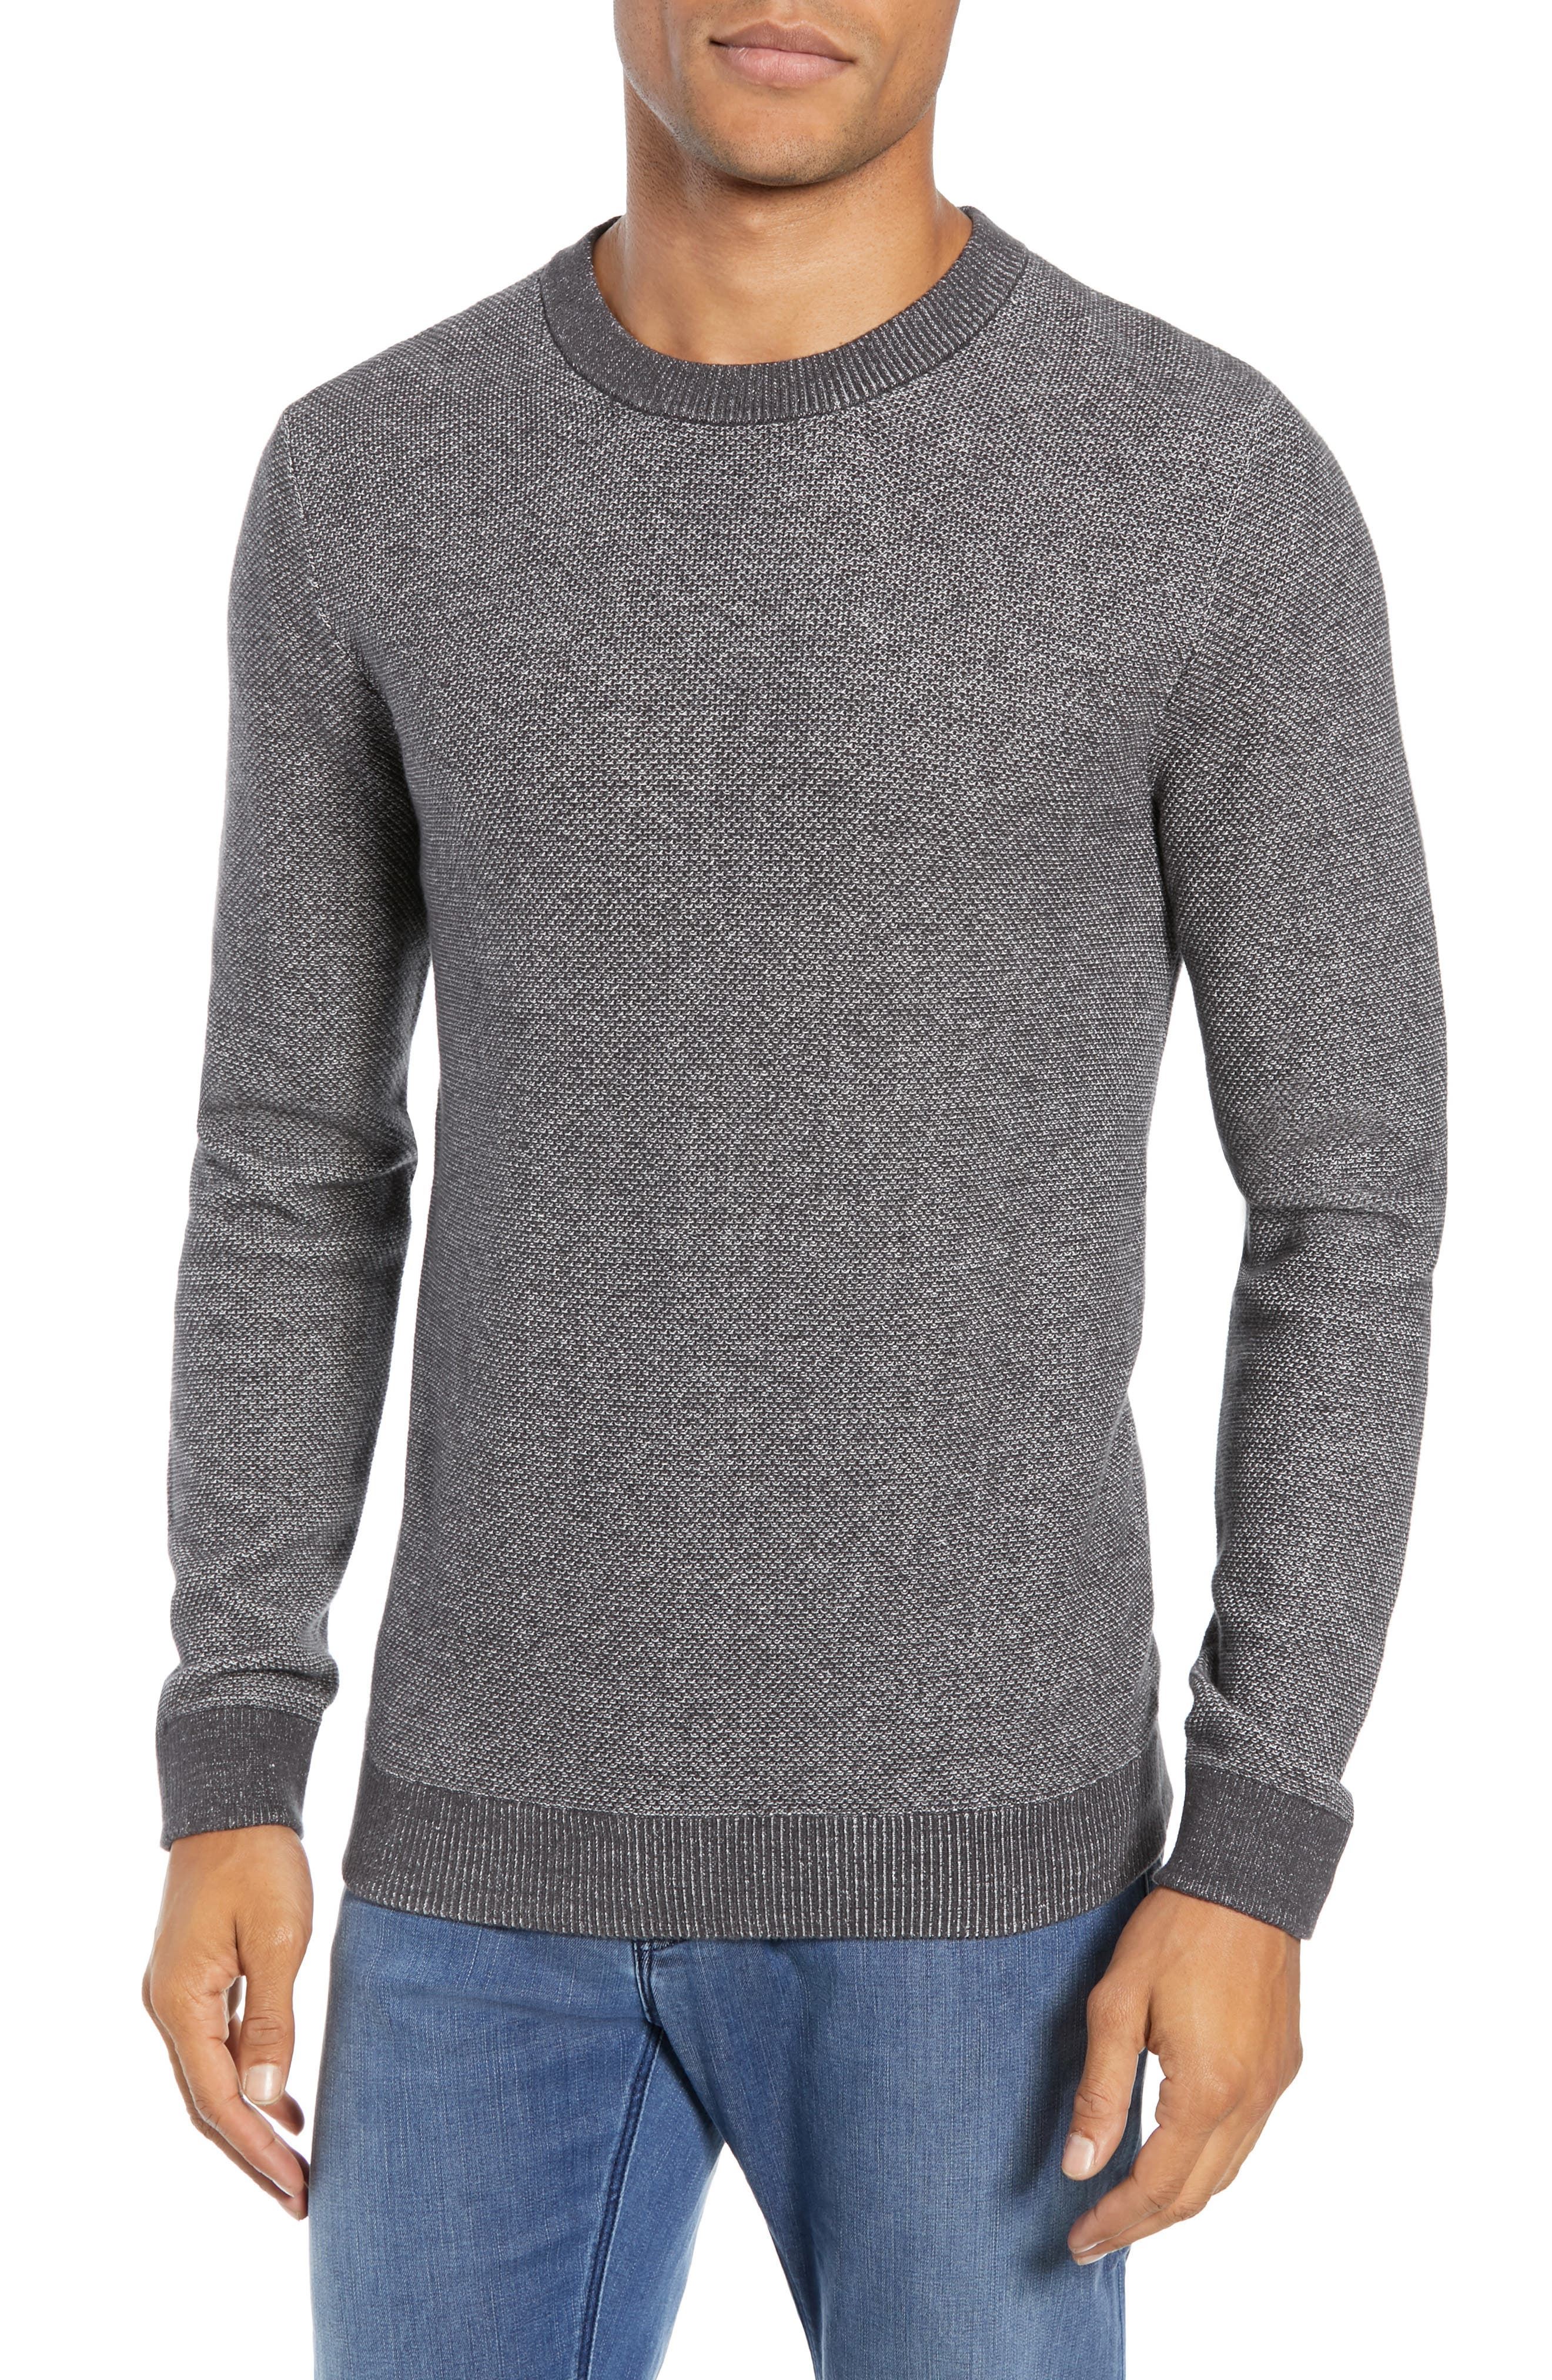 Selected Homme Regular Fit Crewneck Sweater, Grey